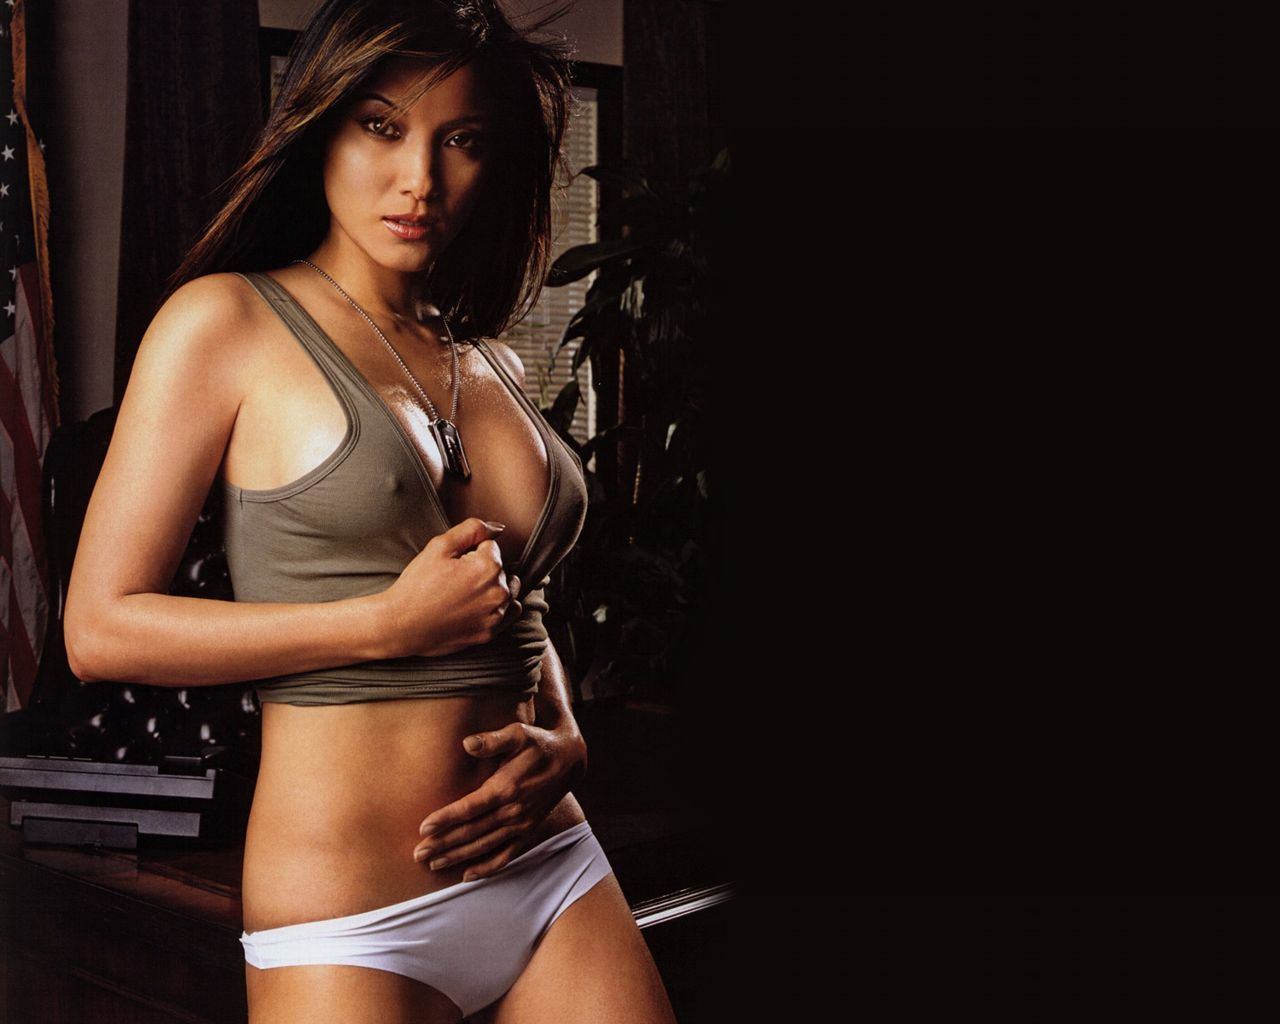 Sexy pics of kelly hu